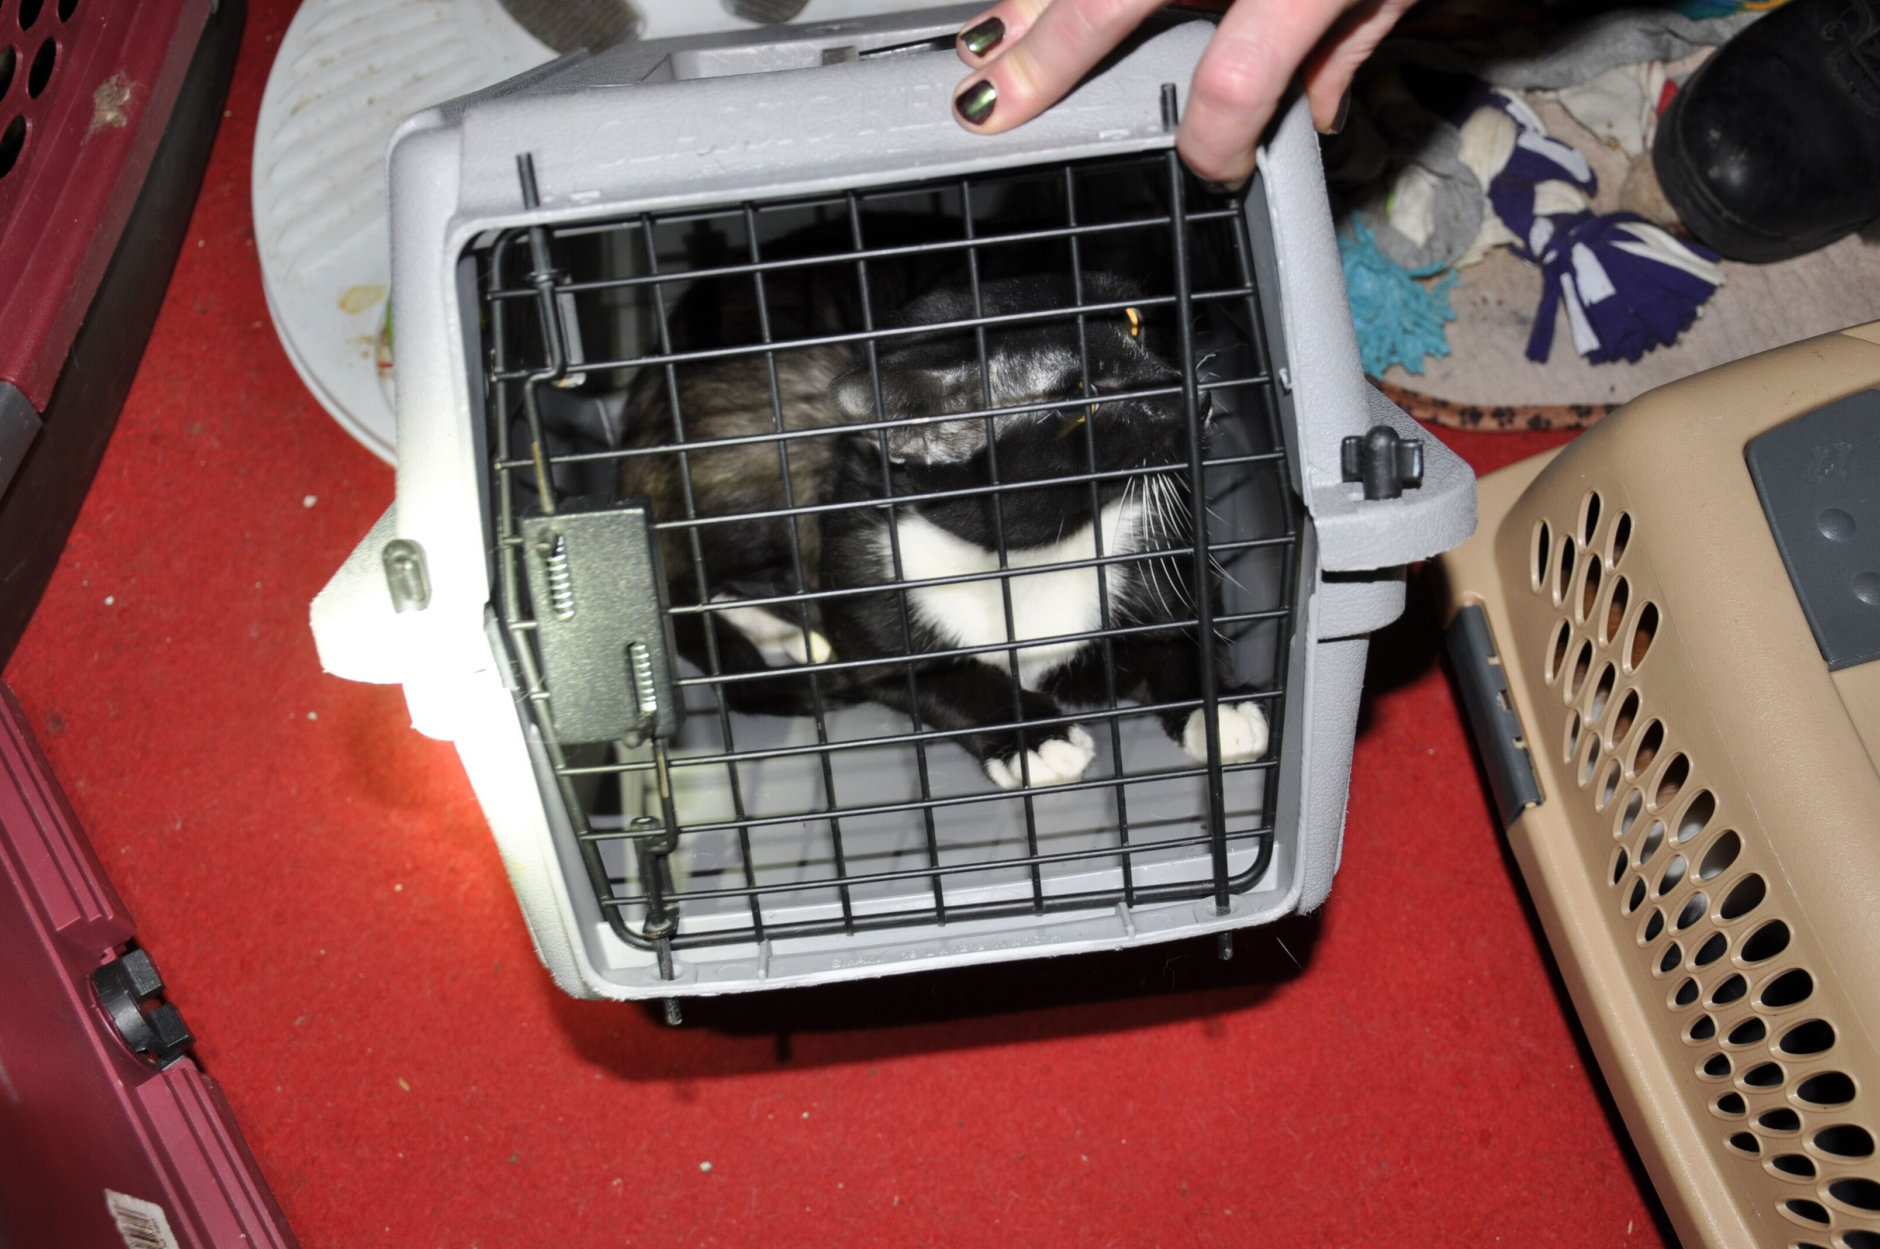 Authorities said they found more than 40 cats inside the woman's one-bedroom in Northeast D.C. apartment, including several who were flea-ridden, underweight and suffering from skin infections and open wounds. (Courtesy Human Rescue Alliance)